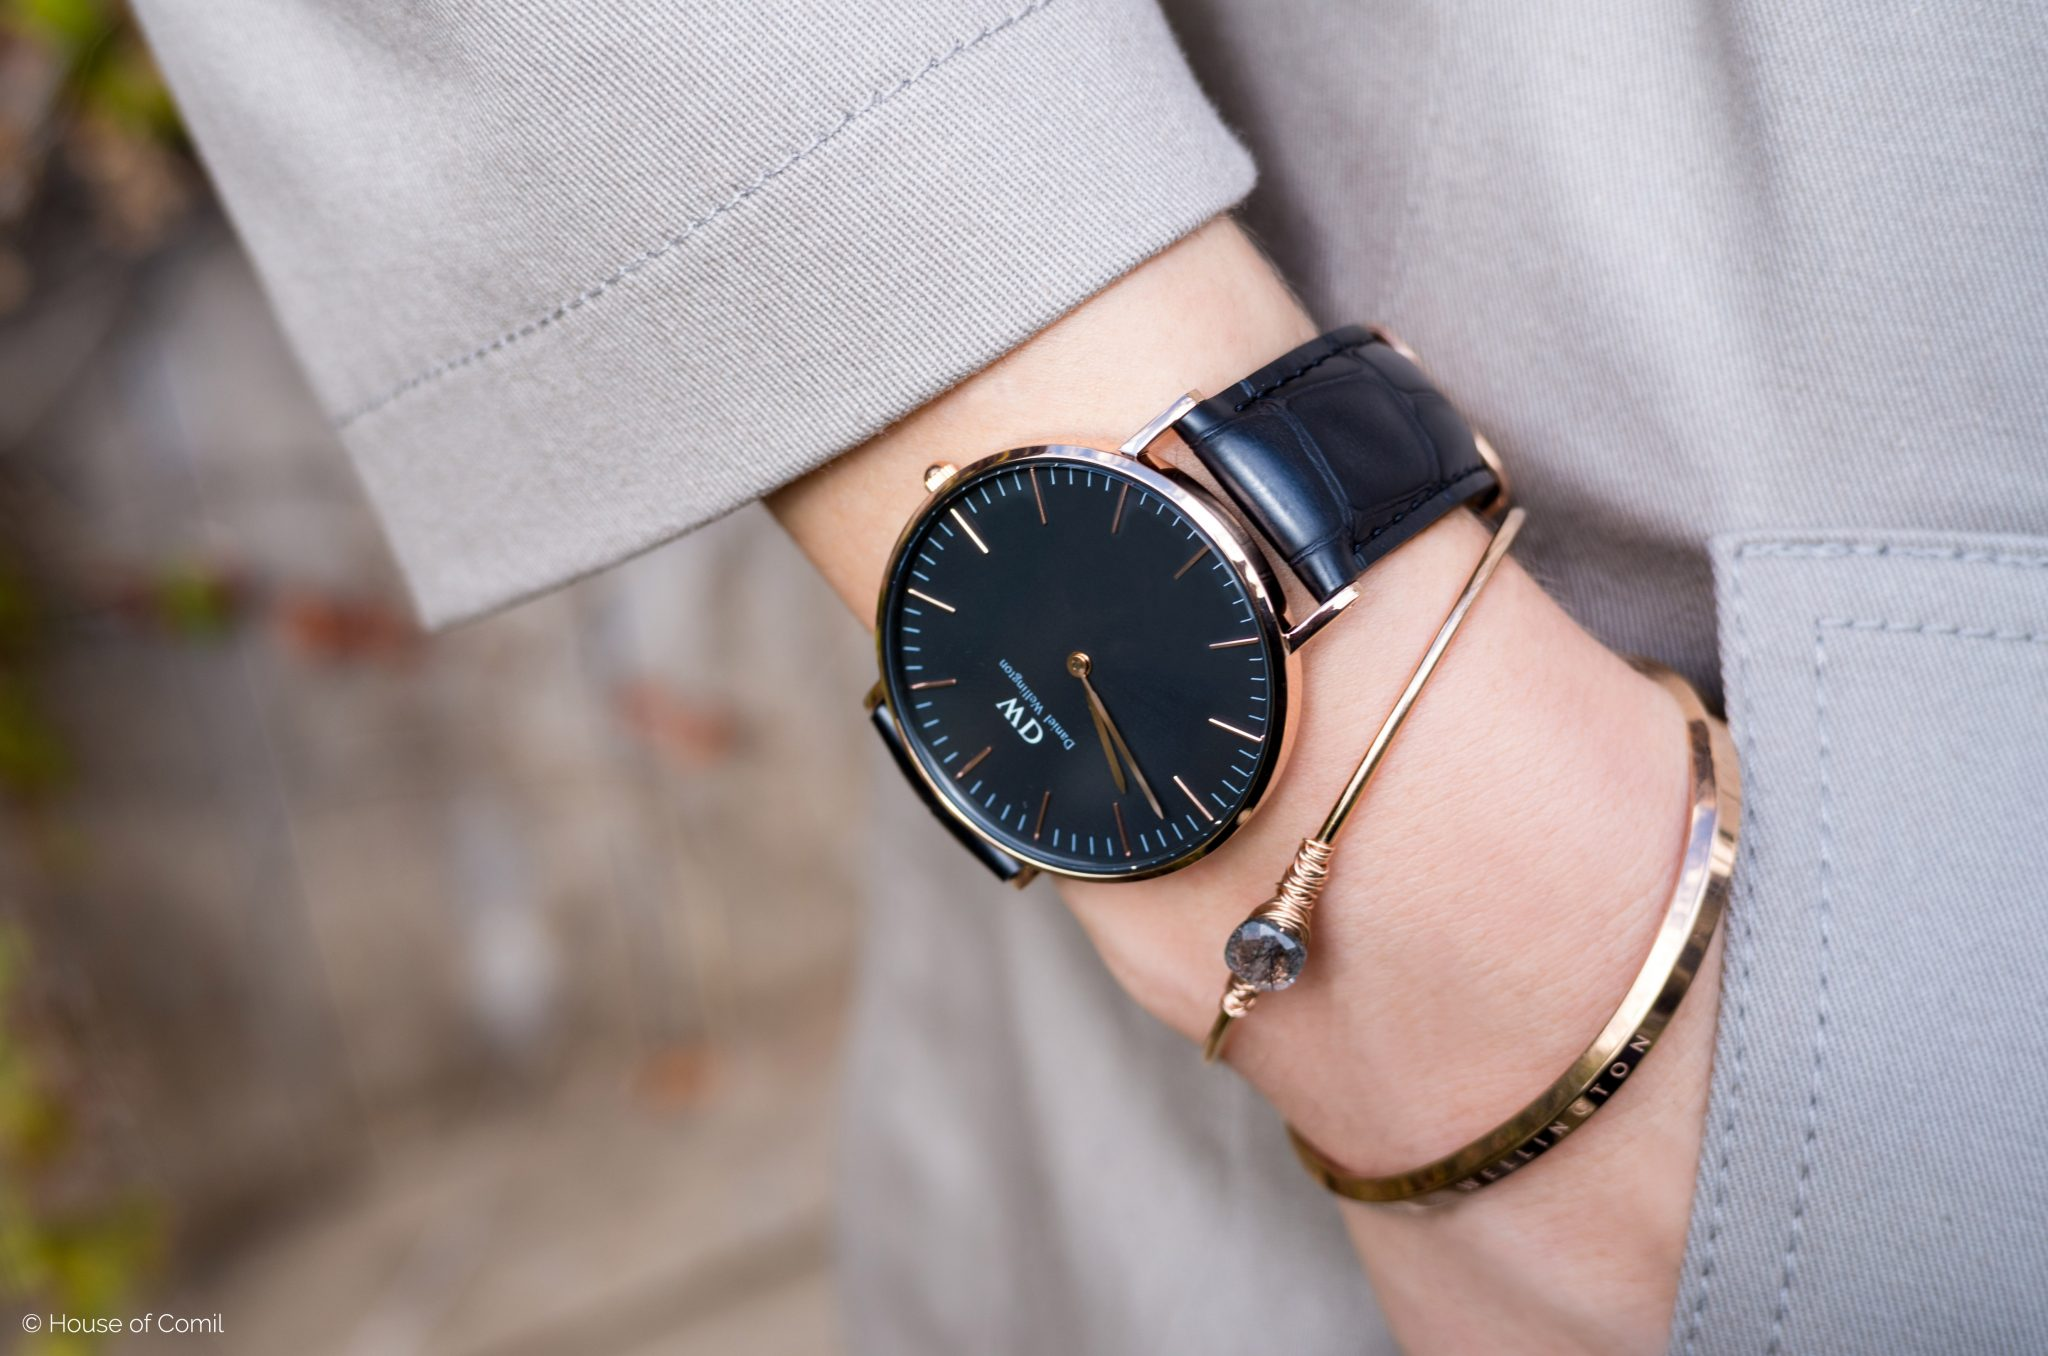 Review of the new classic black watch from Daniel Wellington, check it out and enjoy 15% off on Houseofcomil.com. Click read more or pin to save for later.